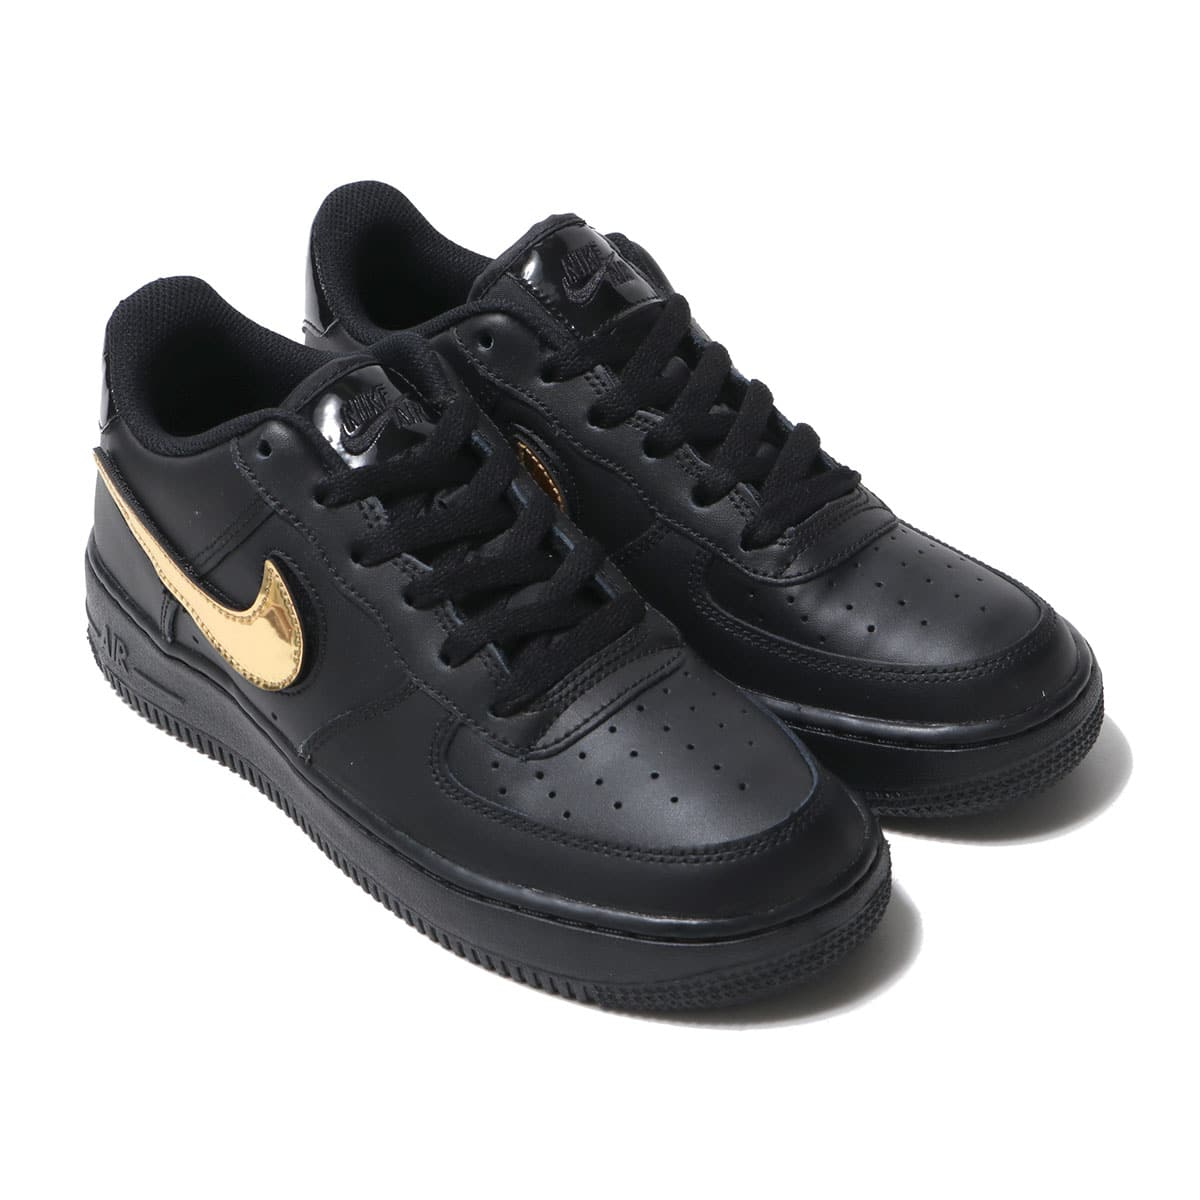 NIKE AIR FORCE 1 LV8 3 GS BLACK/BLACK-BLACK-WHITE 19FA-I_photo_large